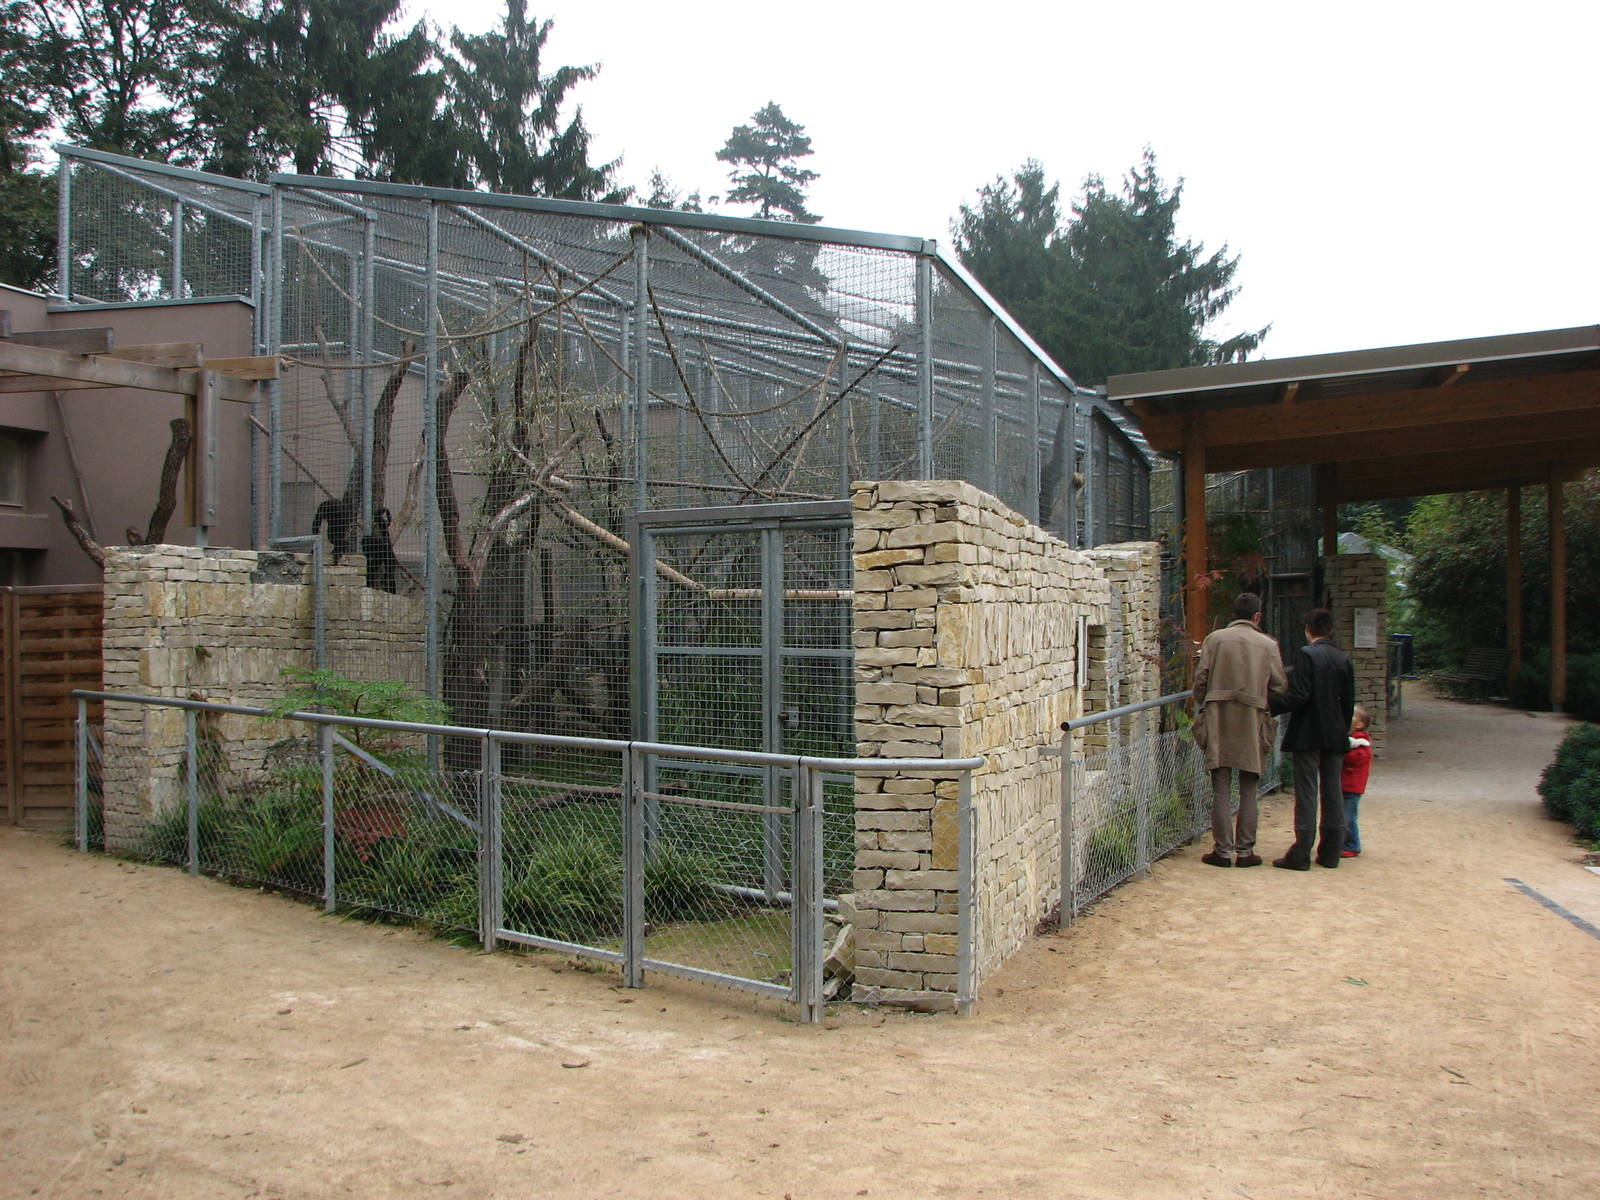 zoo de mulhouse 2006 spider monkey enclosure outside the primate house zoochat. Black Bedroom Furniture Sets. Home Design Ideas